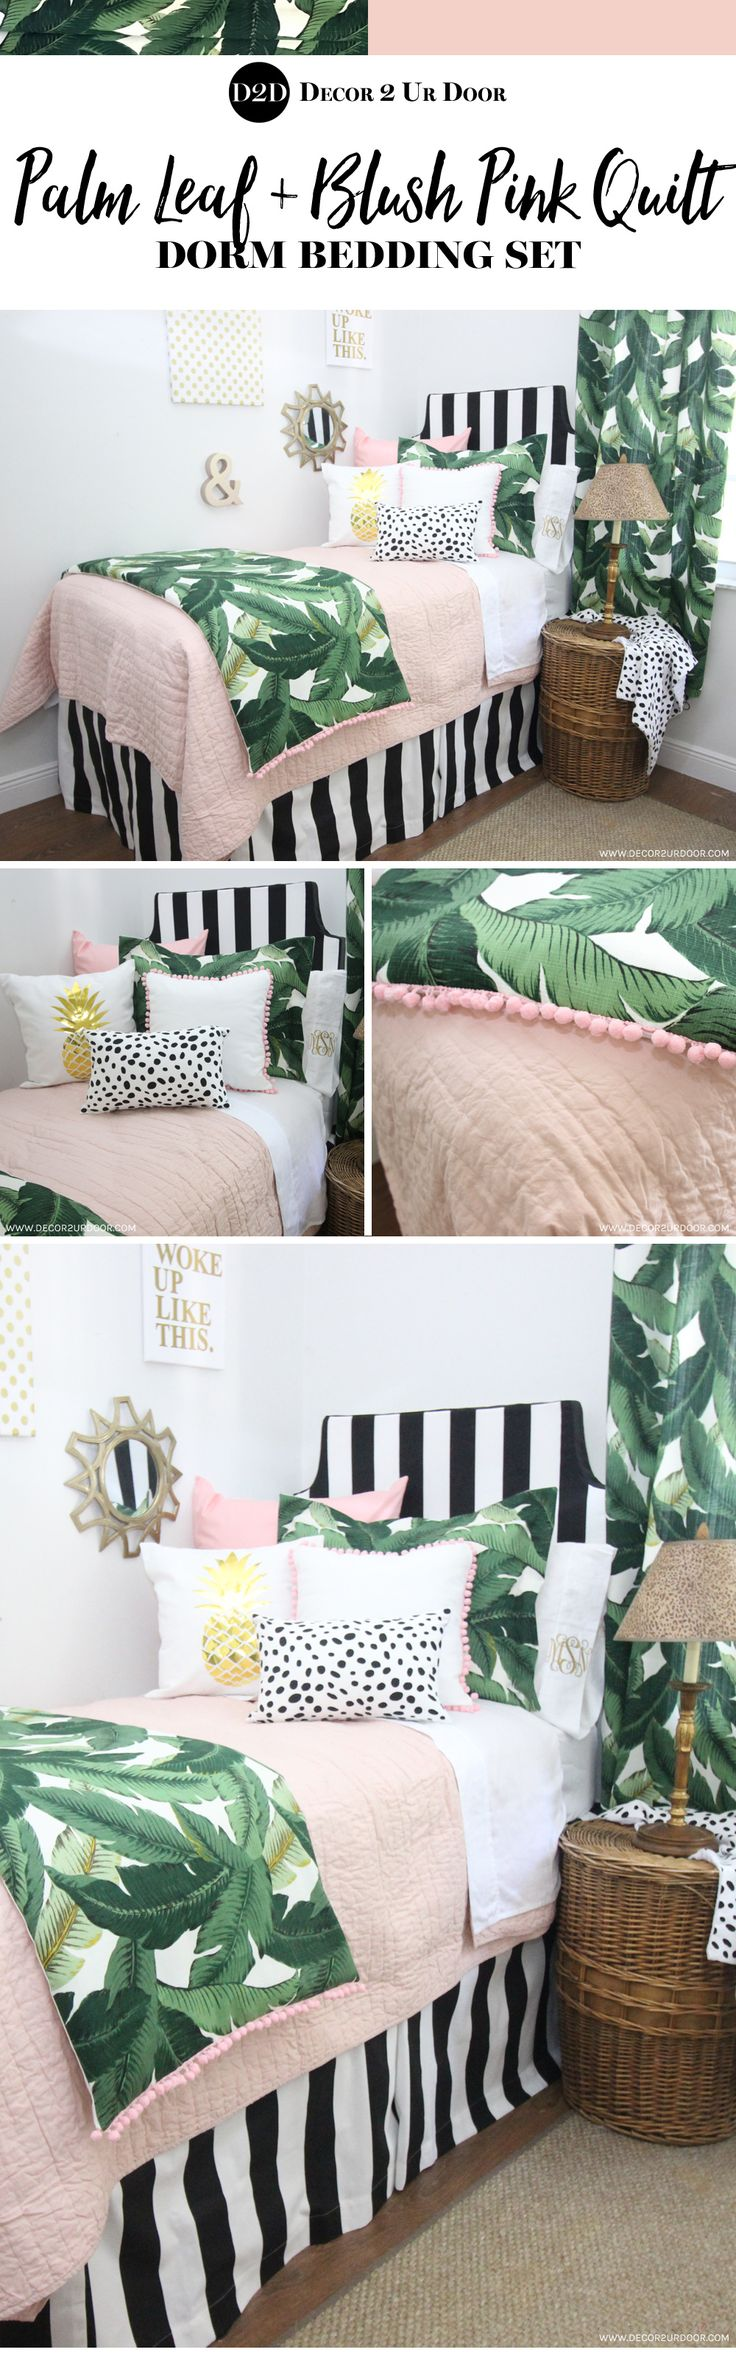 Palm Leaf Dorm Room Bedding. Perfectly pretty in PALM Beach. This gotta-have-it palm tree leaf fabric is simply spectacular. Stripes, pastel pinks, and Dalmatian prints…this bold yet beautiful set would look beautiful in your dorm room.Looking For This Set In Another Size?